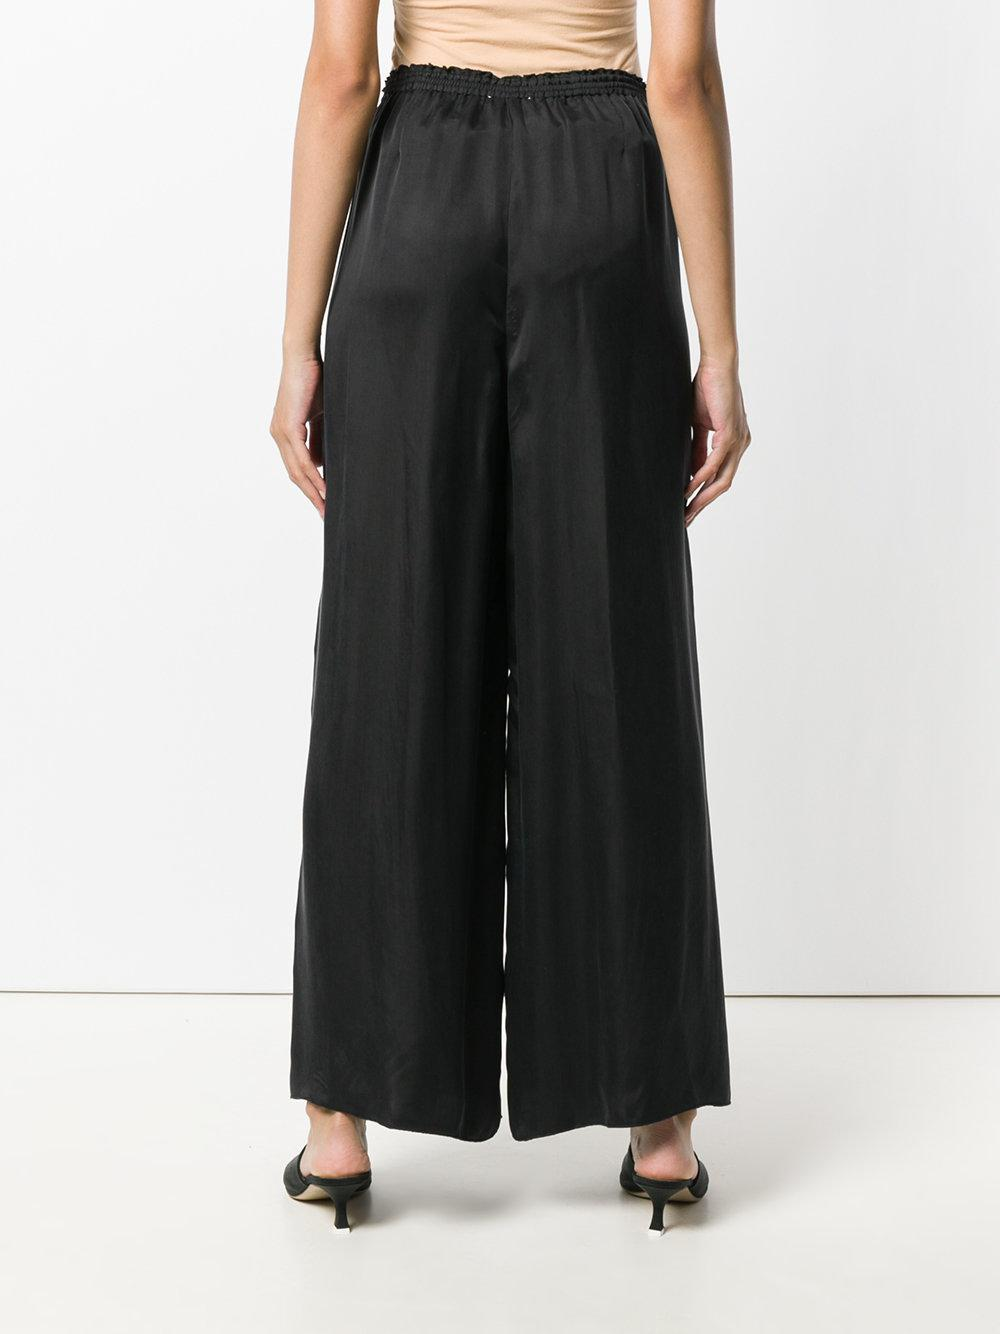 Discount Price High Quality palazzo pants - Black Forte_Forte Clearance Manchester Cheap Sale Low Cost Zmp6i